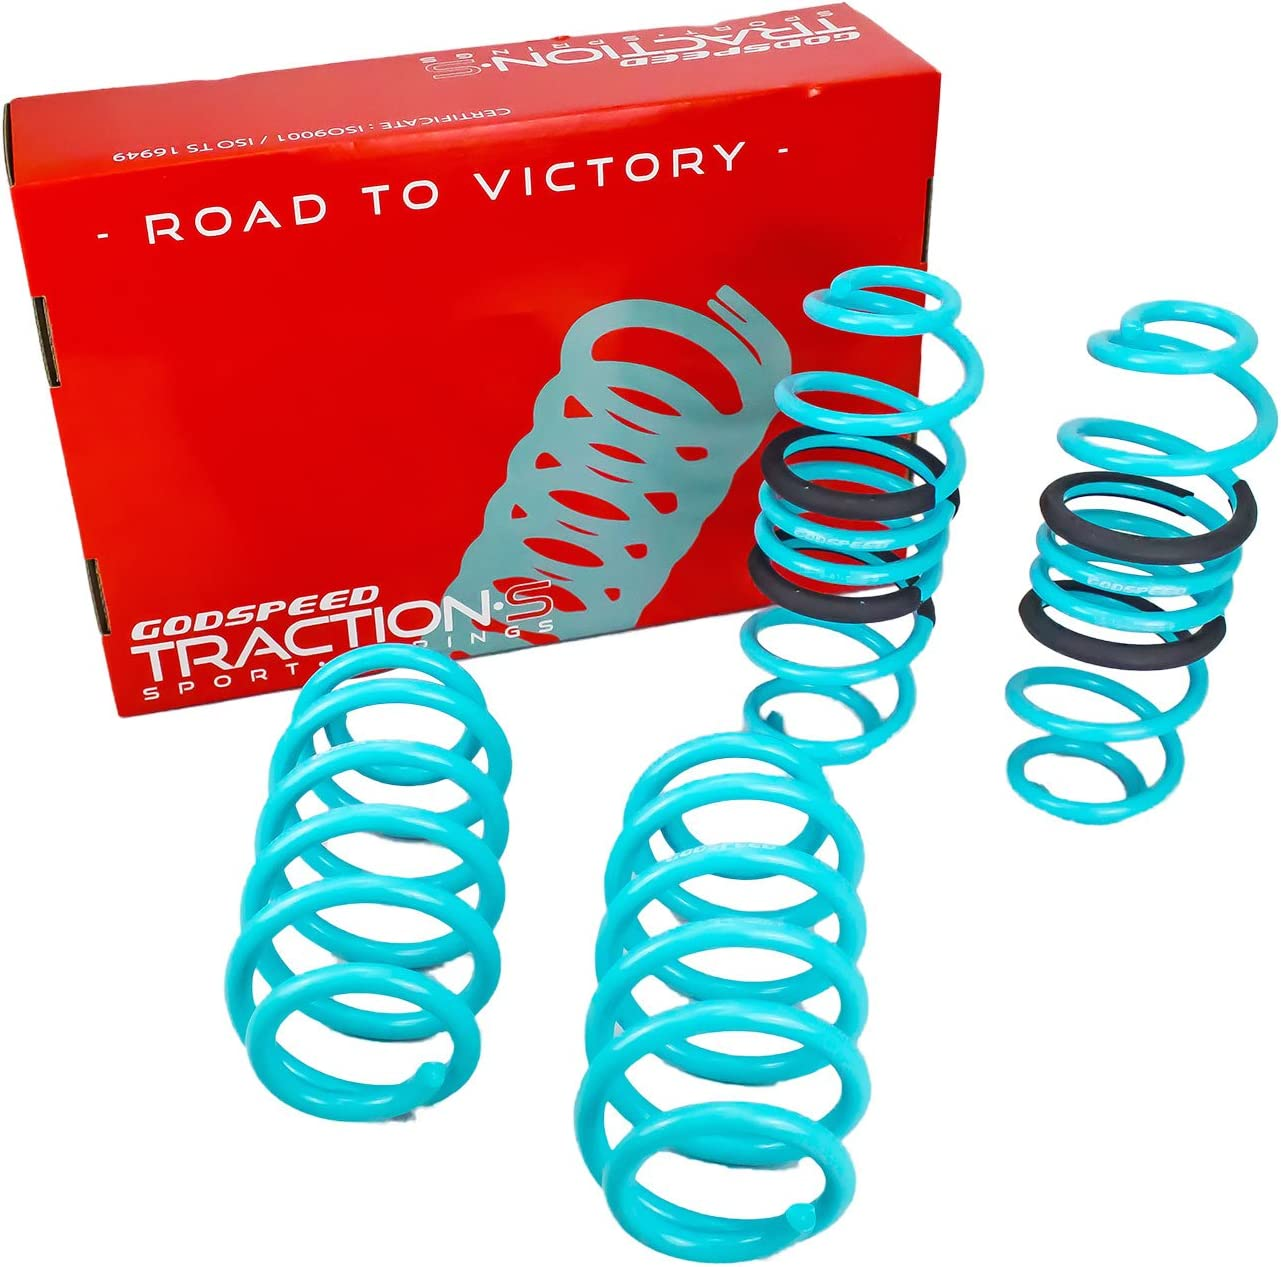 2009-2016 compatible with Audi A4//A4 Quattro//S4 Reduce Body Roll Set of 4 Godspeed LS-TS-AI-0005 Traction-S Sports Lowering Springs Improved Handling B8